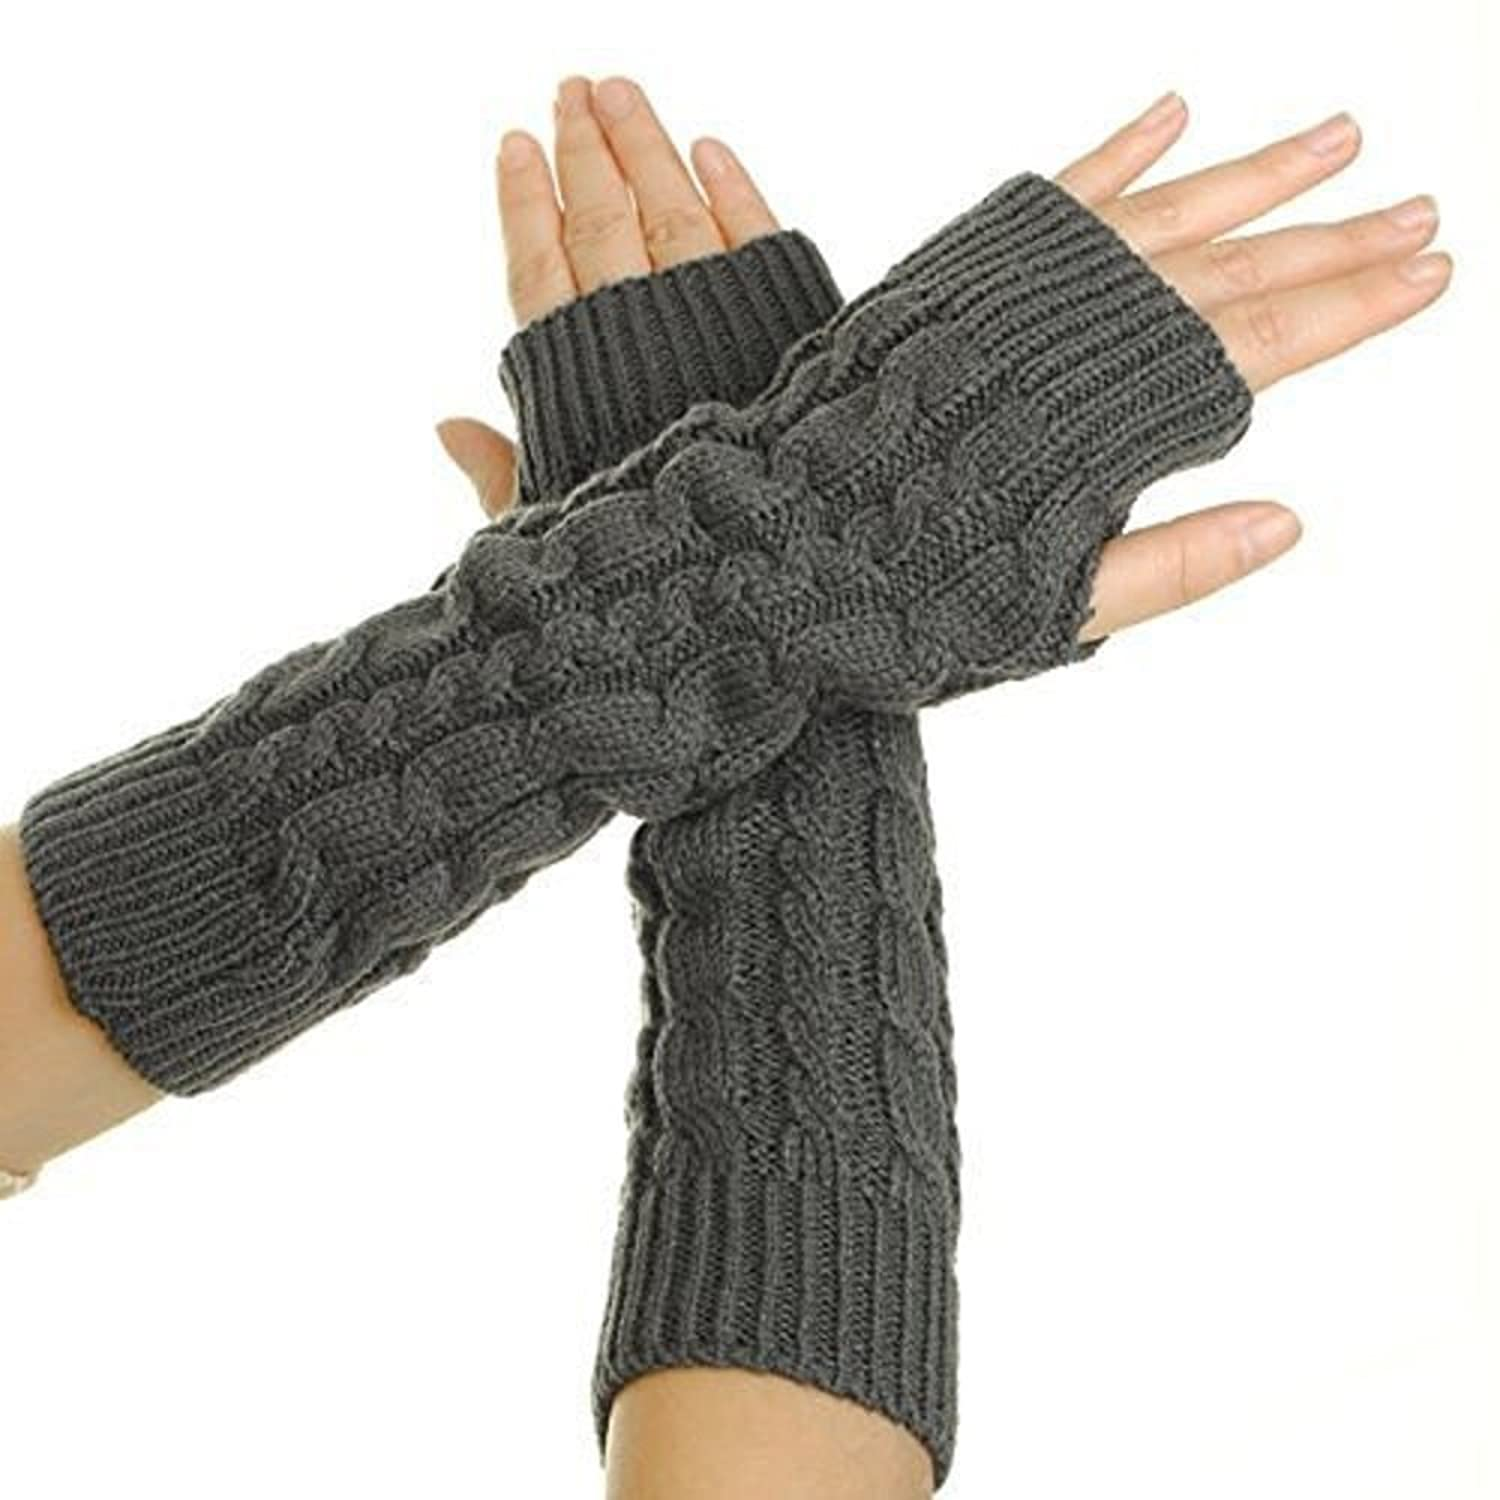 1 Pair Autumn Winter Warm Women's Cable Knit Arm Warmer Fingerless Gloves Thumb Hole Gloves Mittens Grey